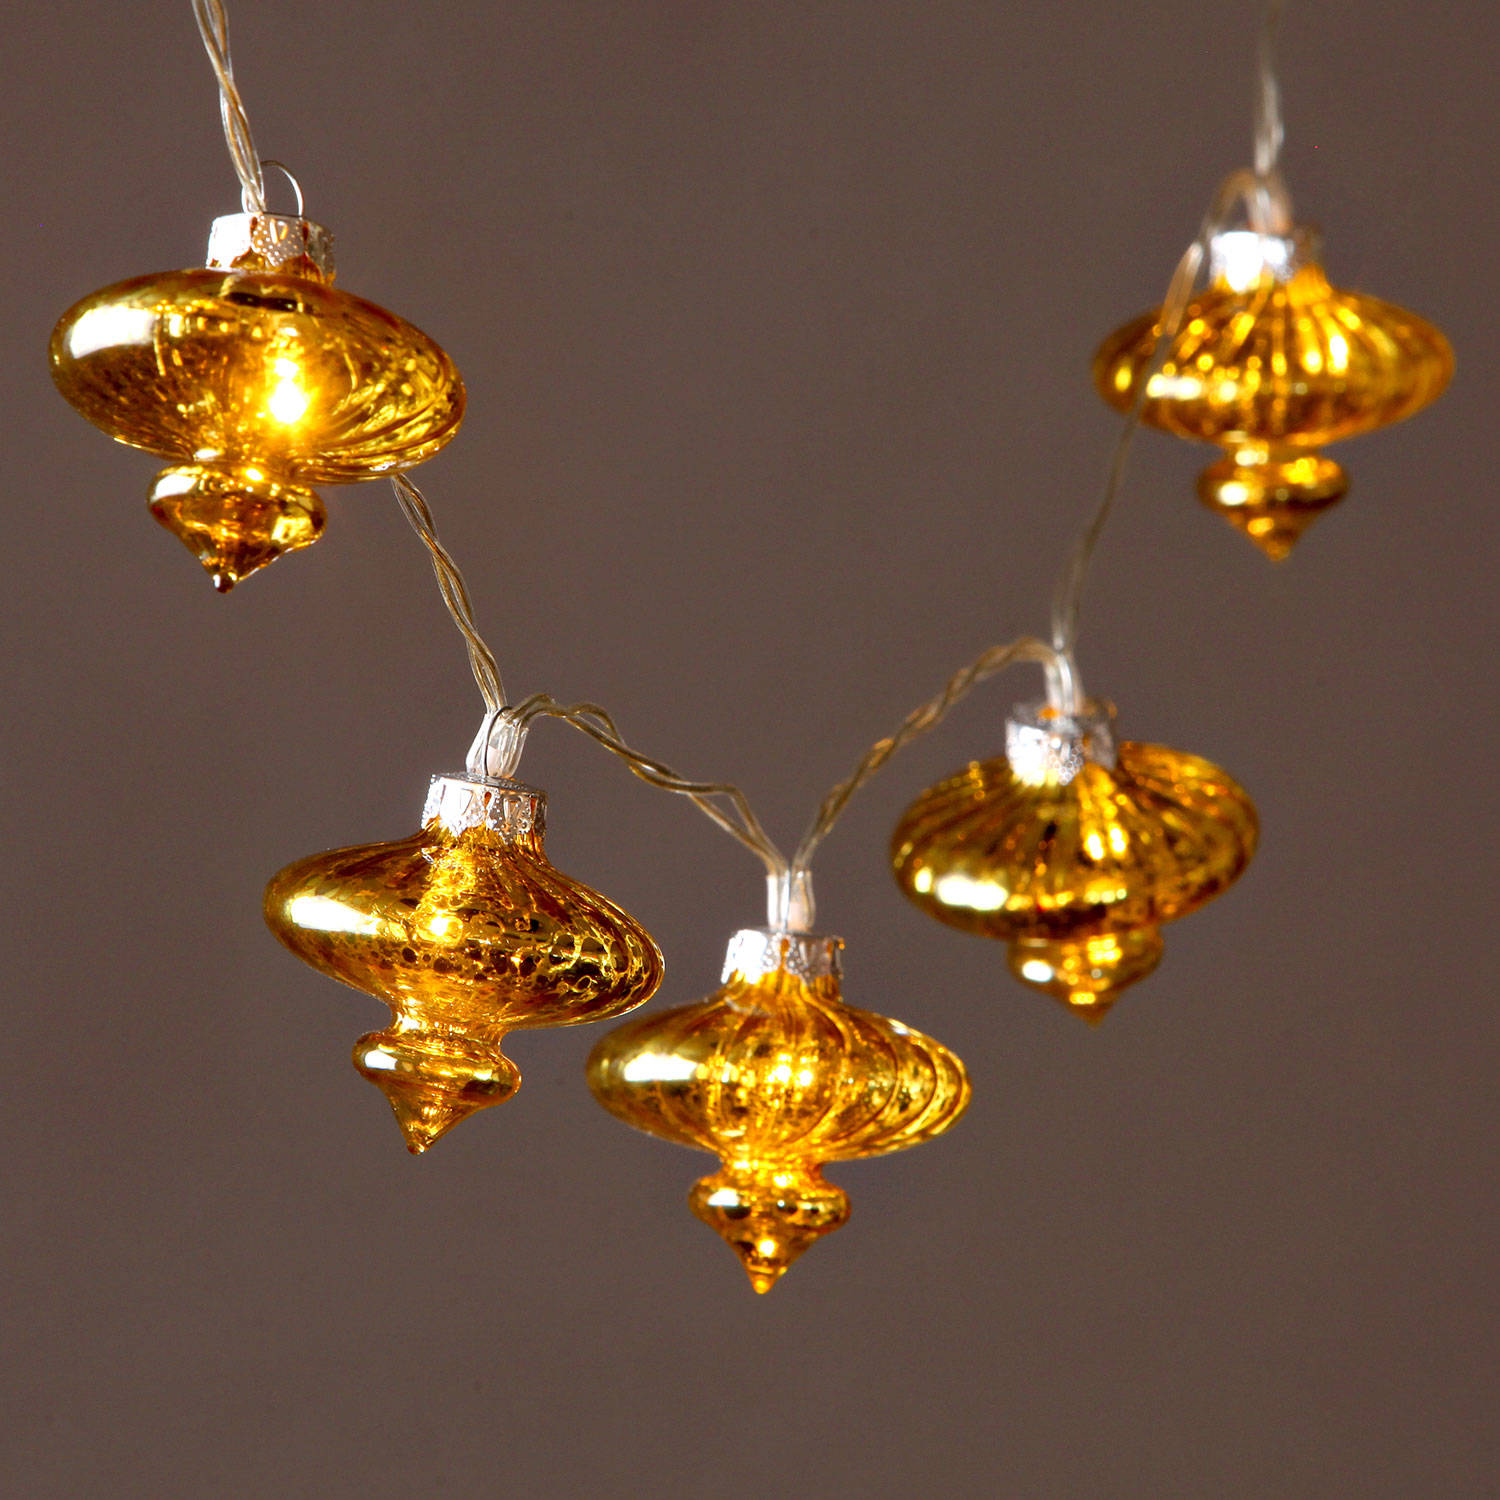 Lights.com Lit Decor String Lights Decorative Vintage Gold Glass Lantern Battery String ...